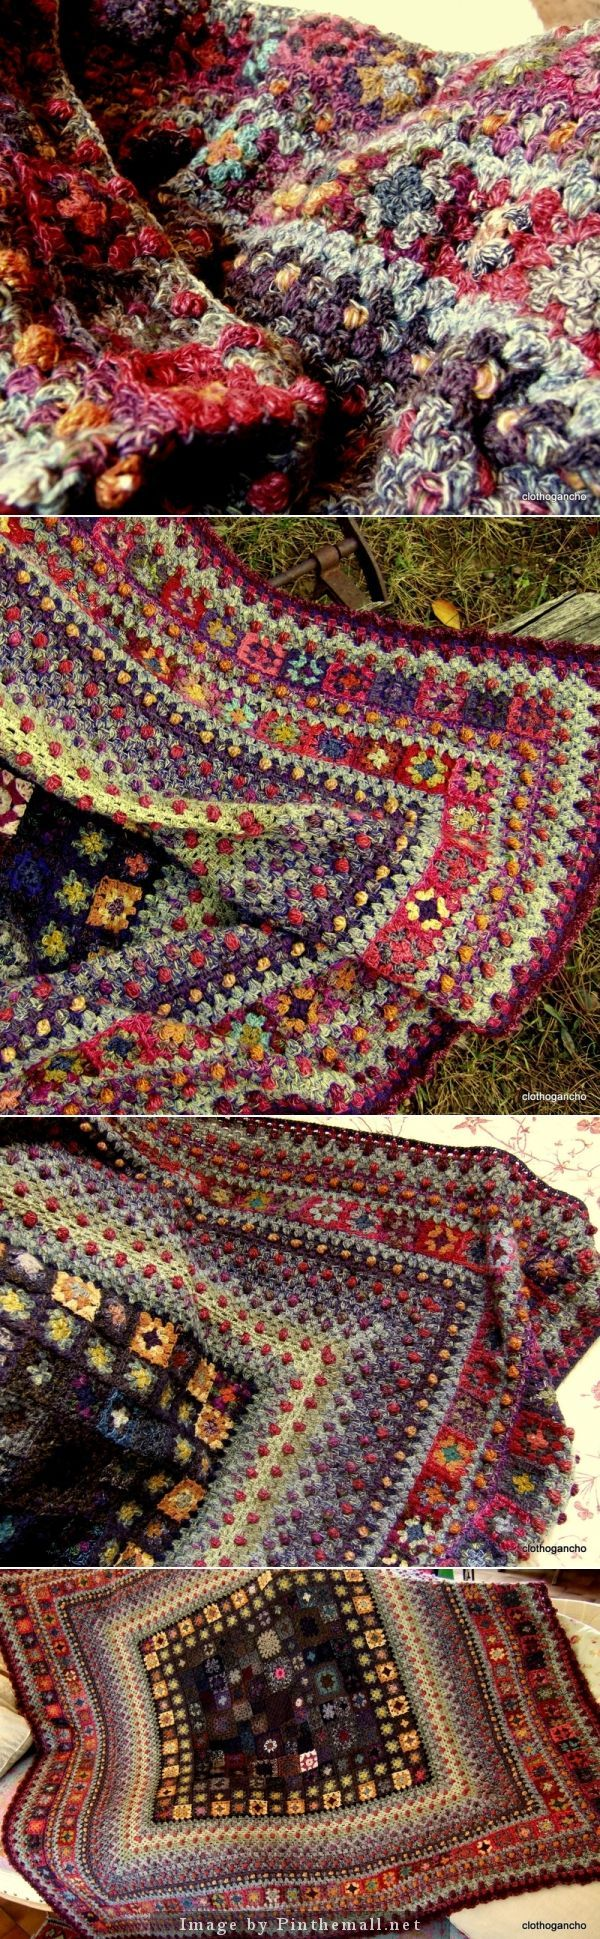 Granny Squares can sometimes seem repetitious, but not in this ...